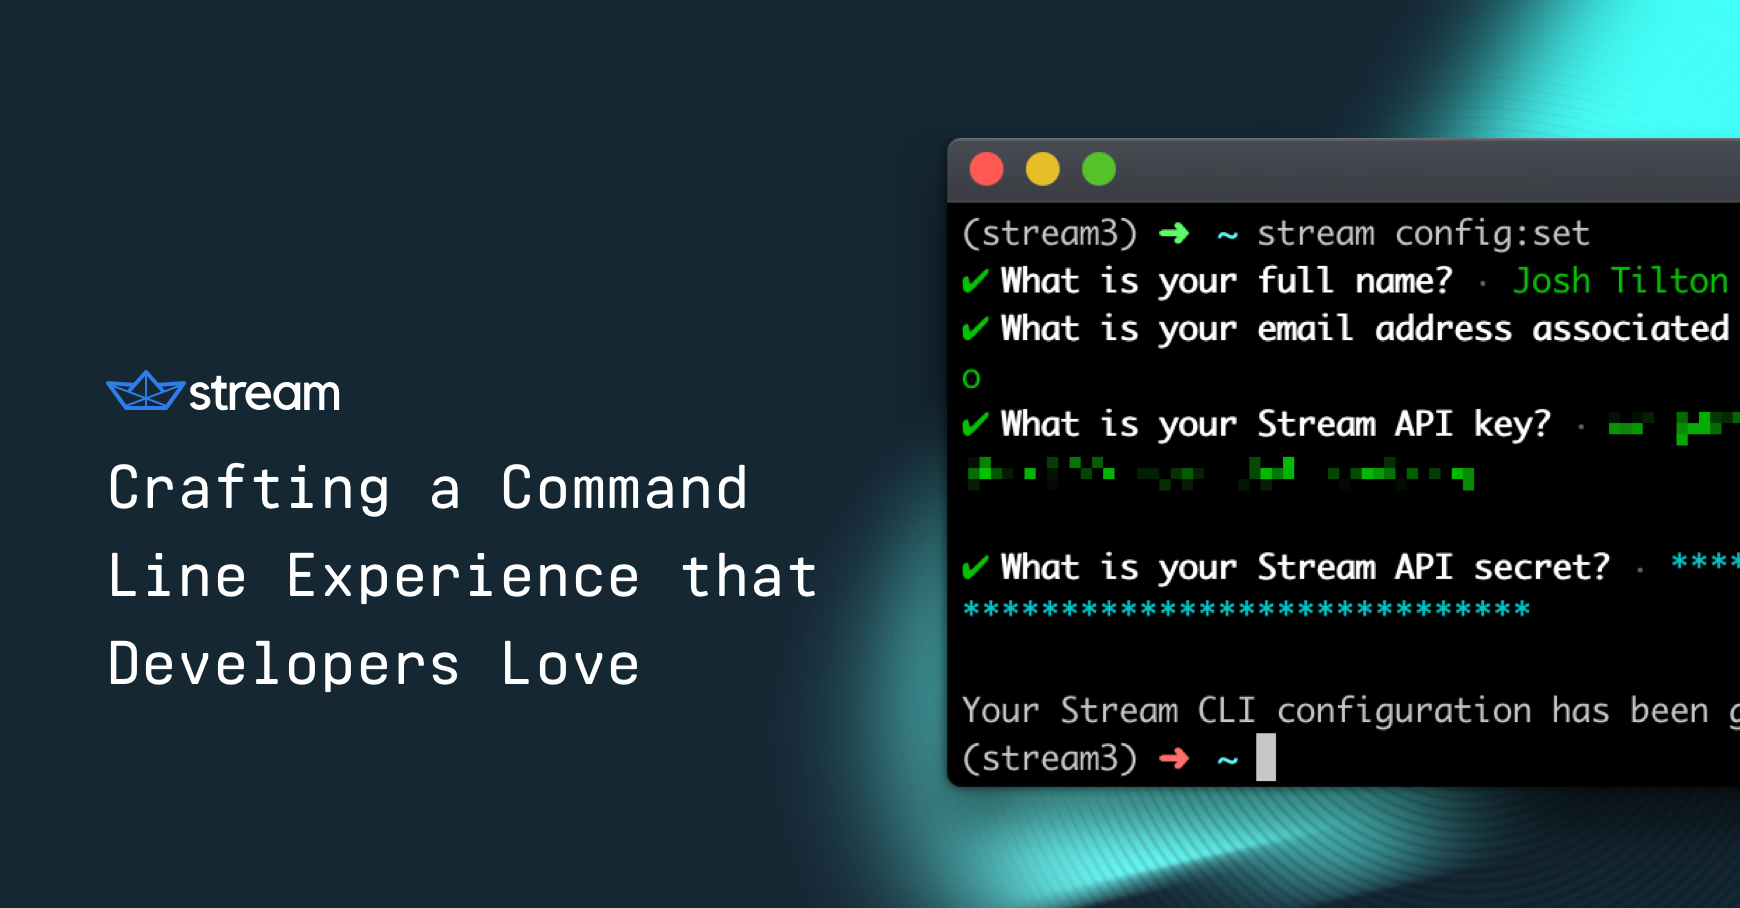 Crafting a Command Line Experience that Developers Love